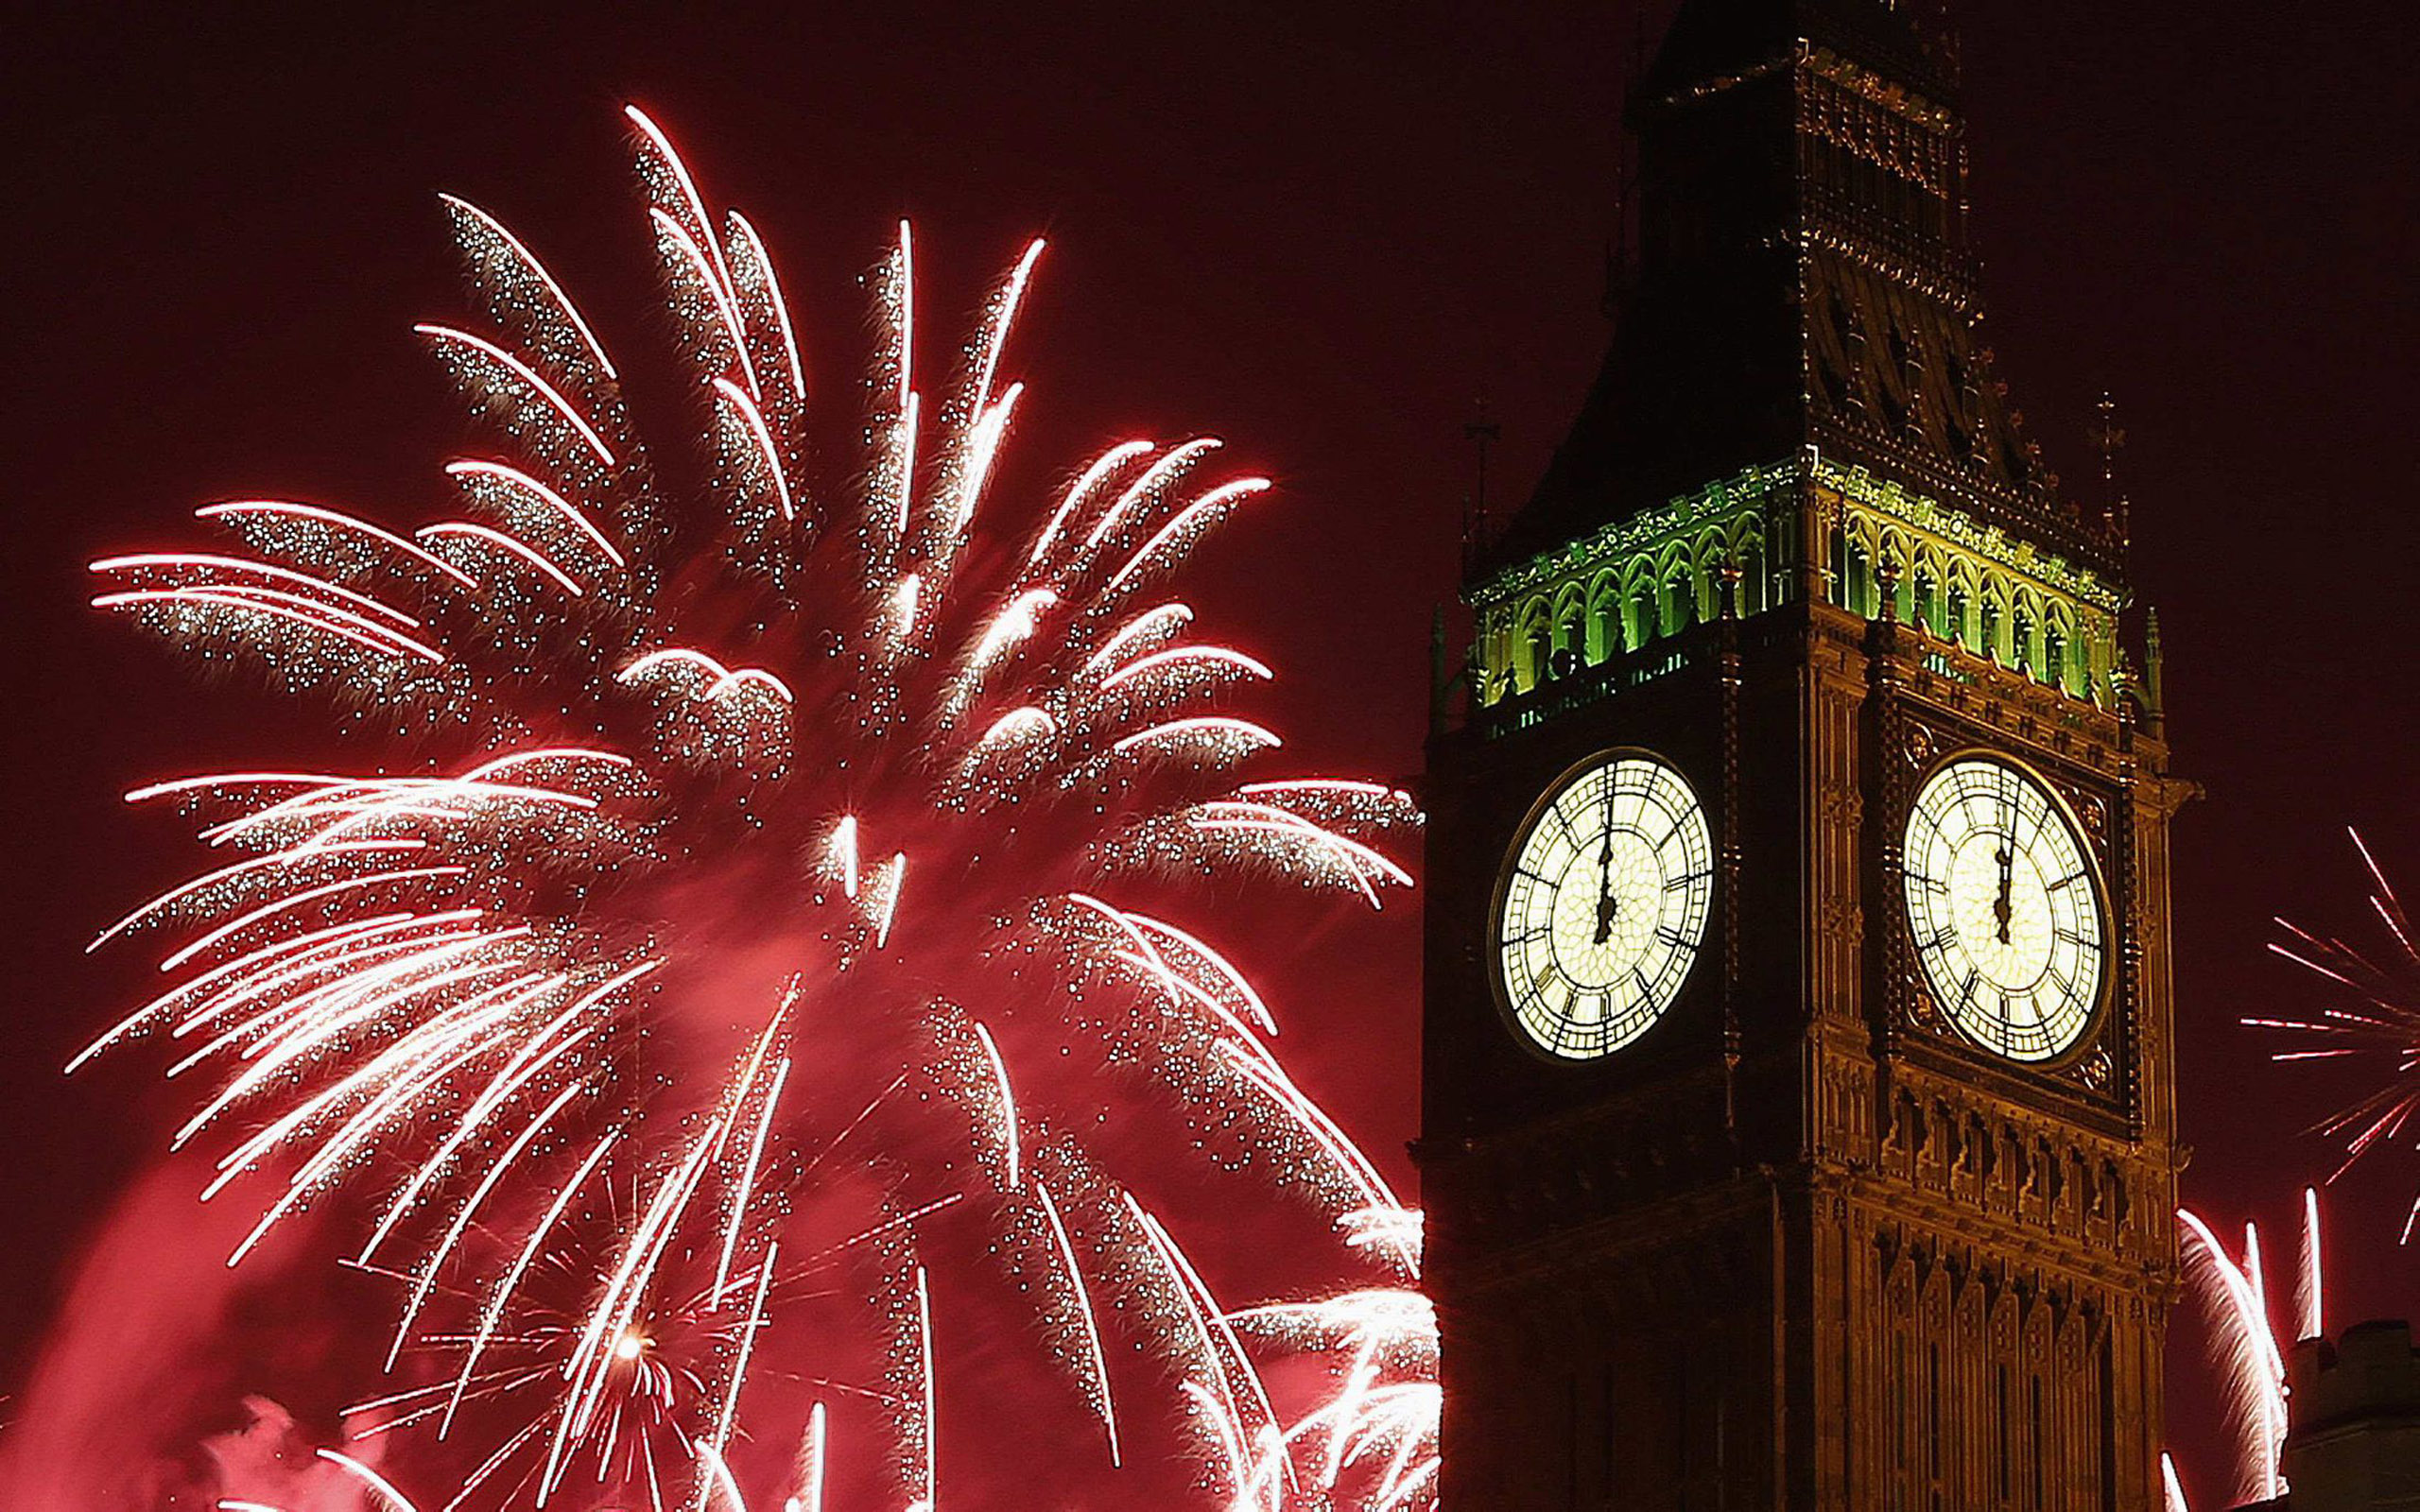 How To Use Gif As Wallpaper Iphone X New Year S Fireworks Celebration Of Midnight Big Ben Clock